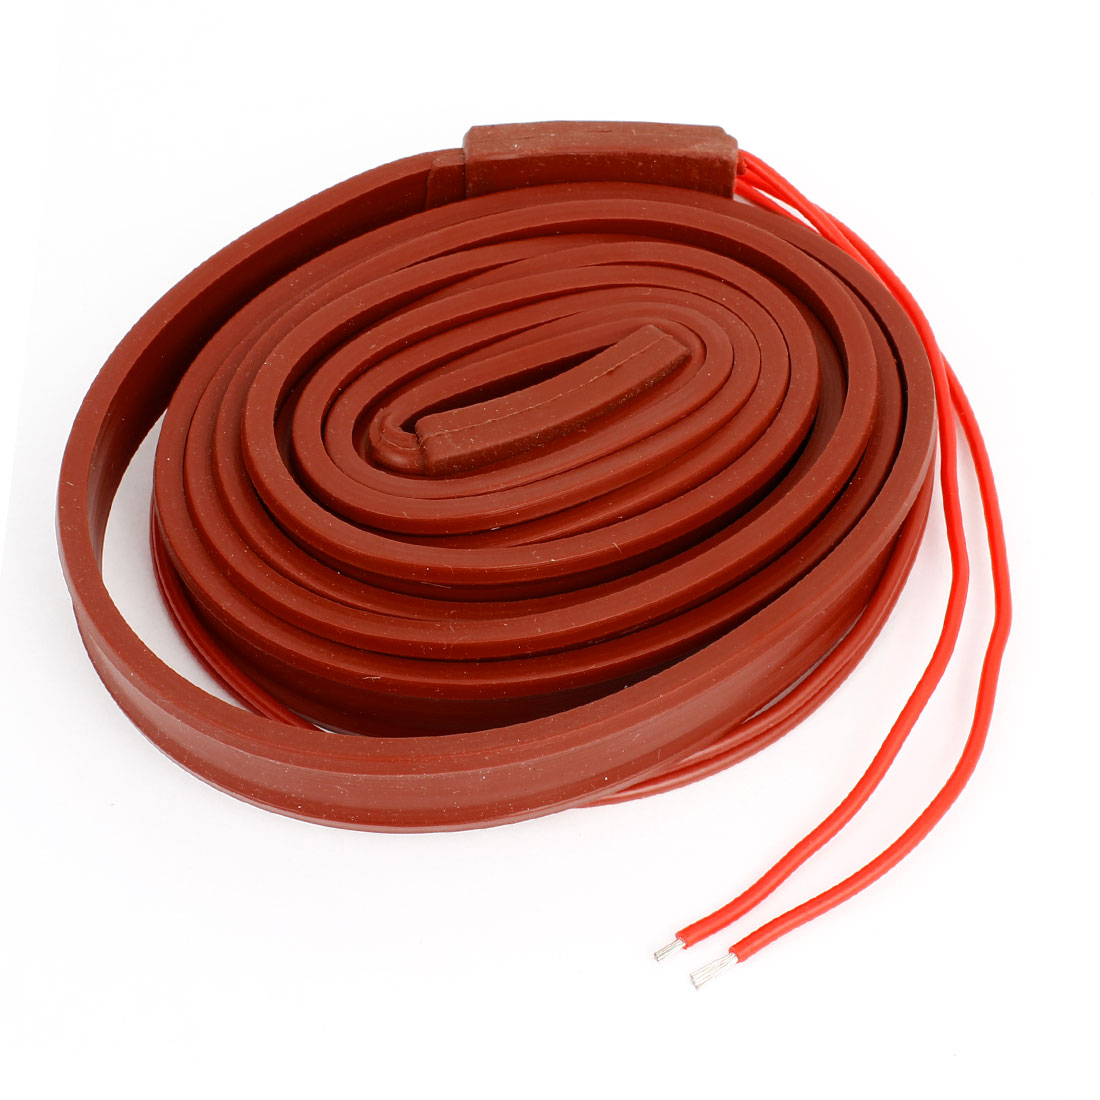 Brick Red Freezing Protection Silicone Waterproof Heater Cable 2M x 15mm 36V